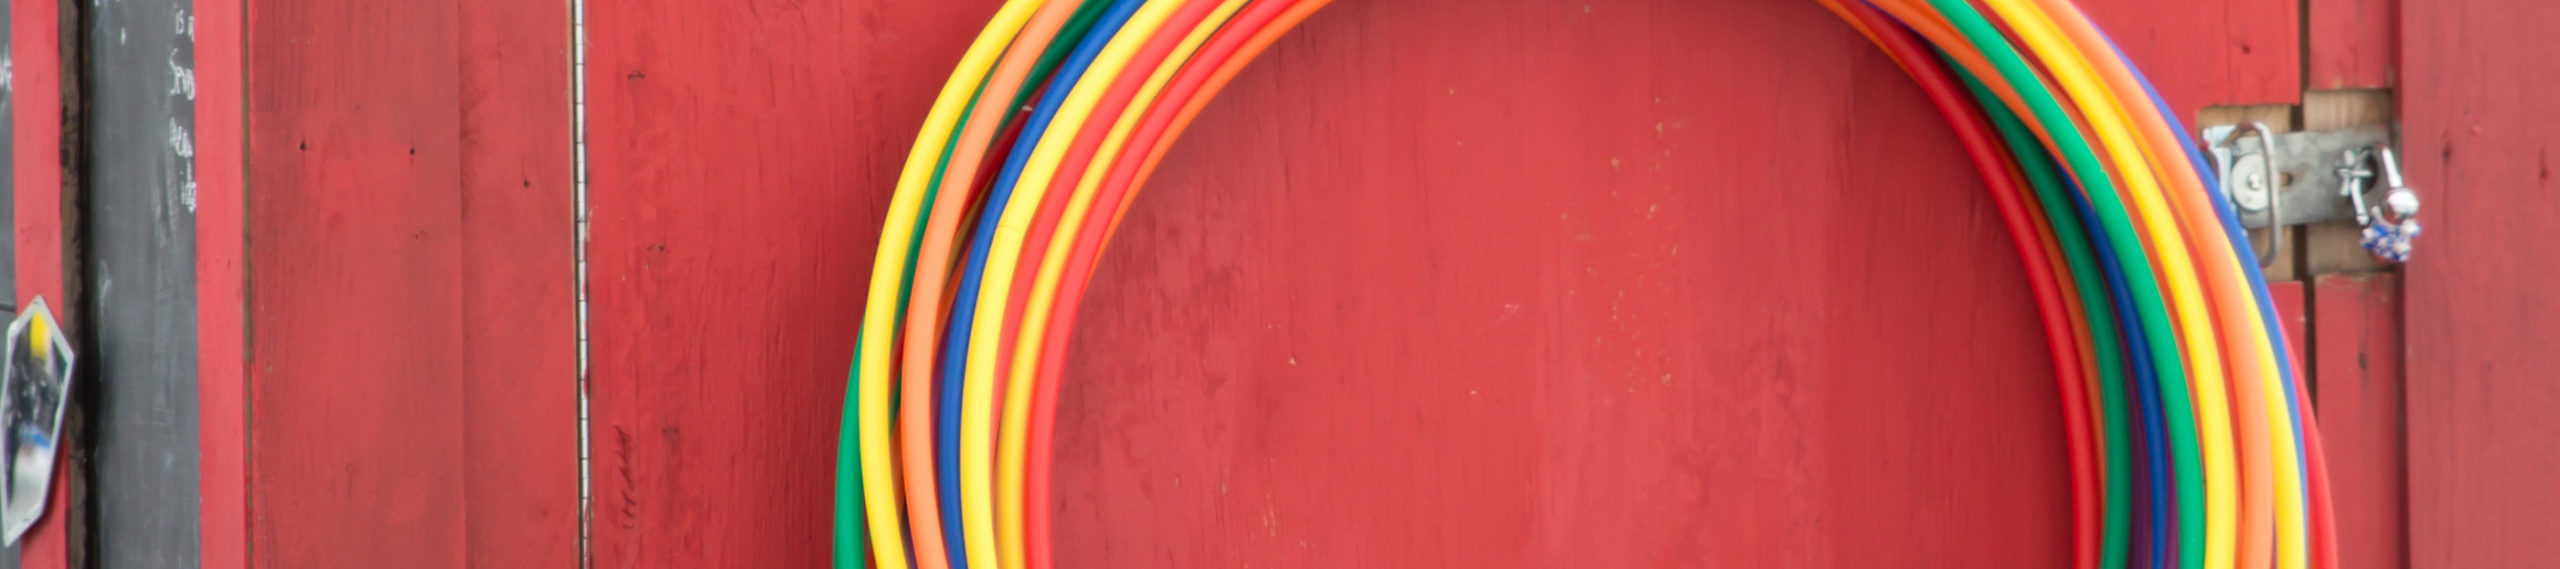 A giant pile of hula hoops in all of the colors of the rainbow lean on a red shanty door.